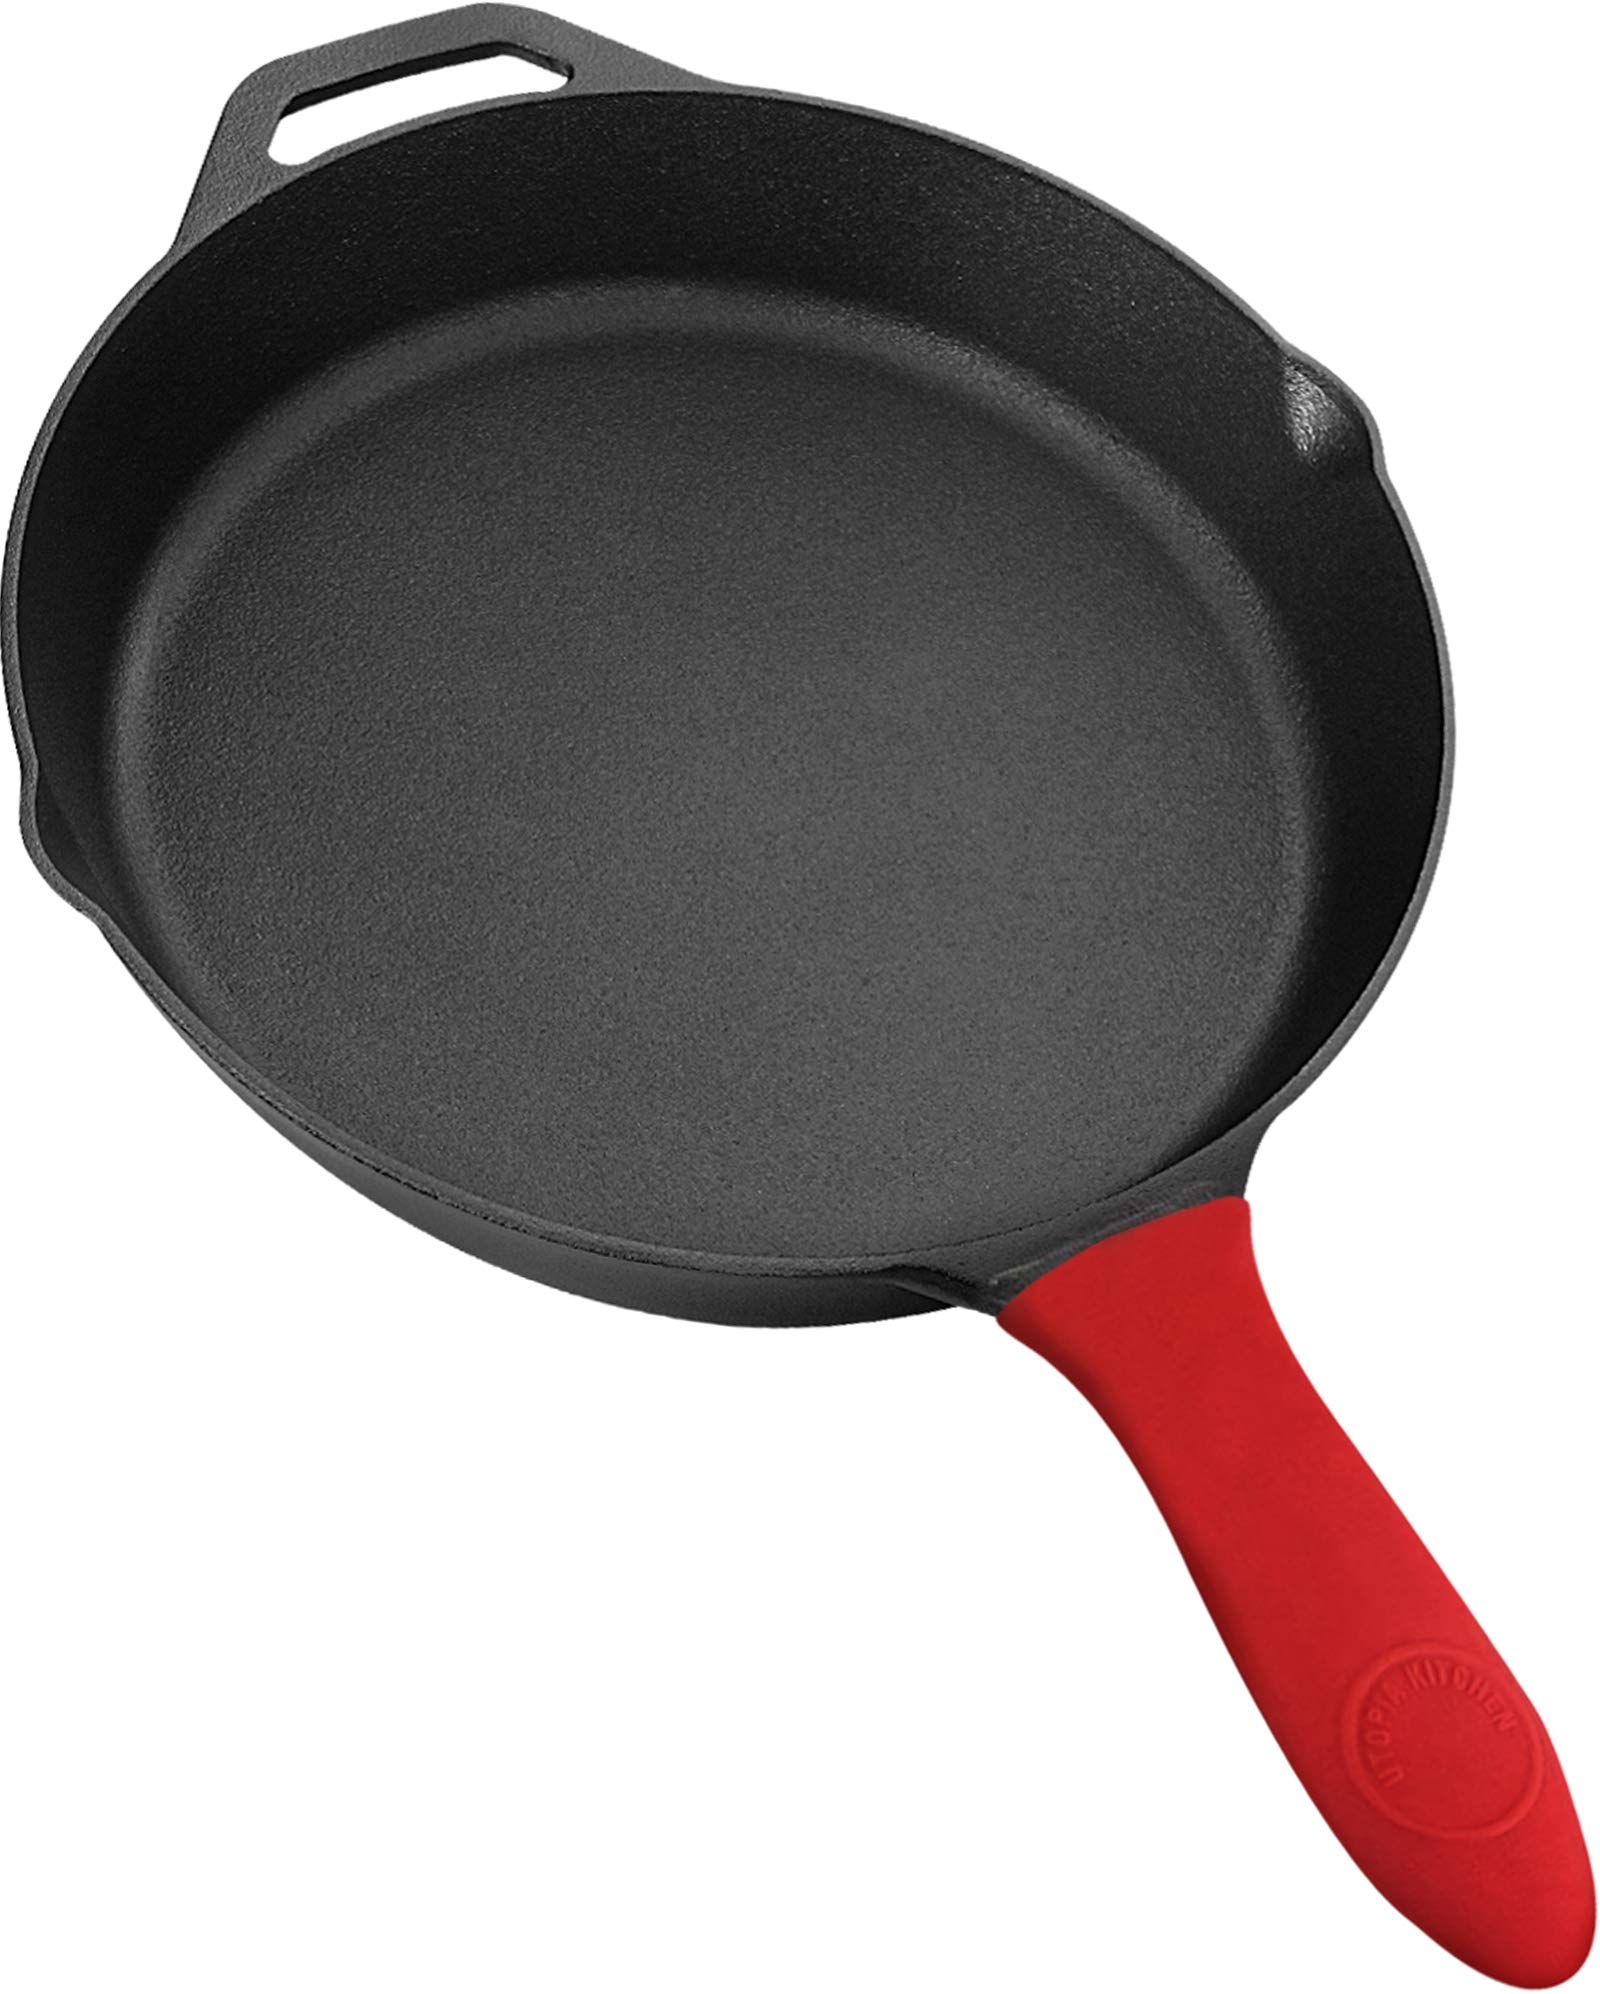 12.5 Inch Pre-Seasoned Cast Iron Skillet with Silicone Handle - Utopia Kitchen by Utopia Kitchen (Image #1)